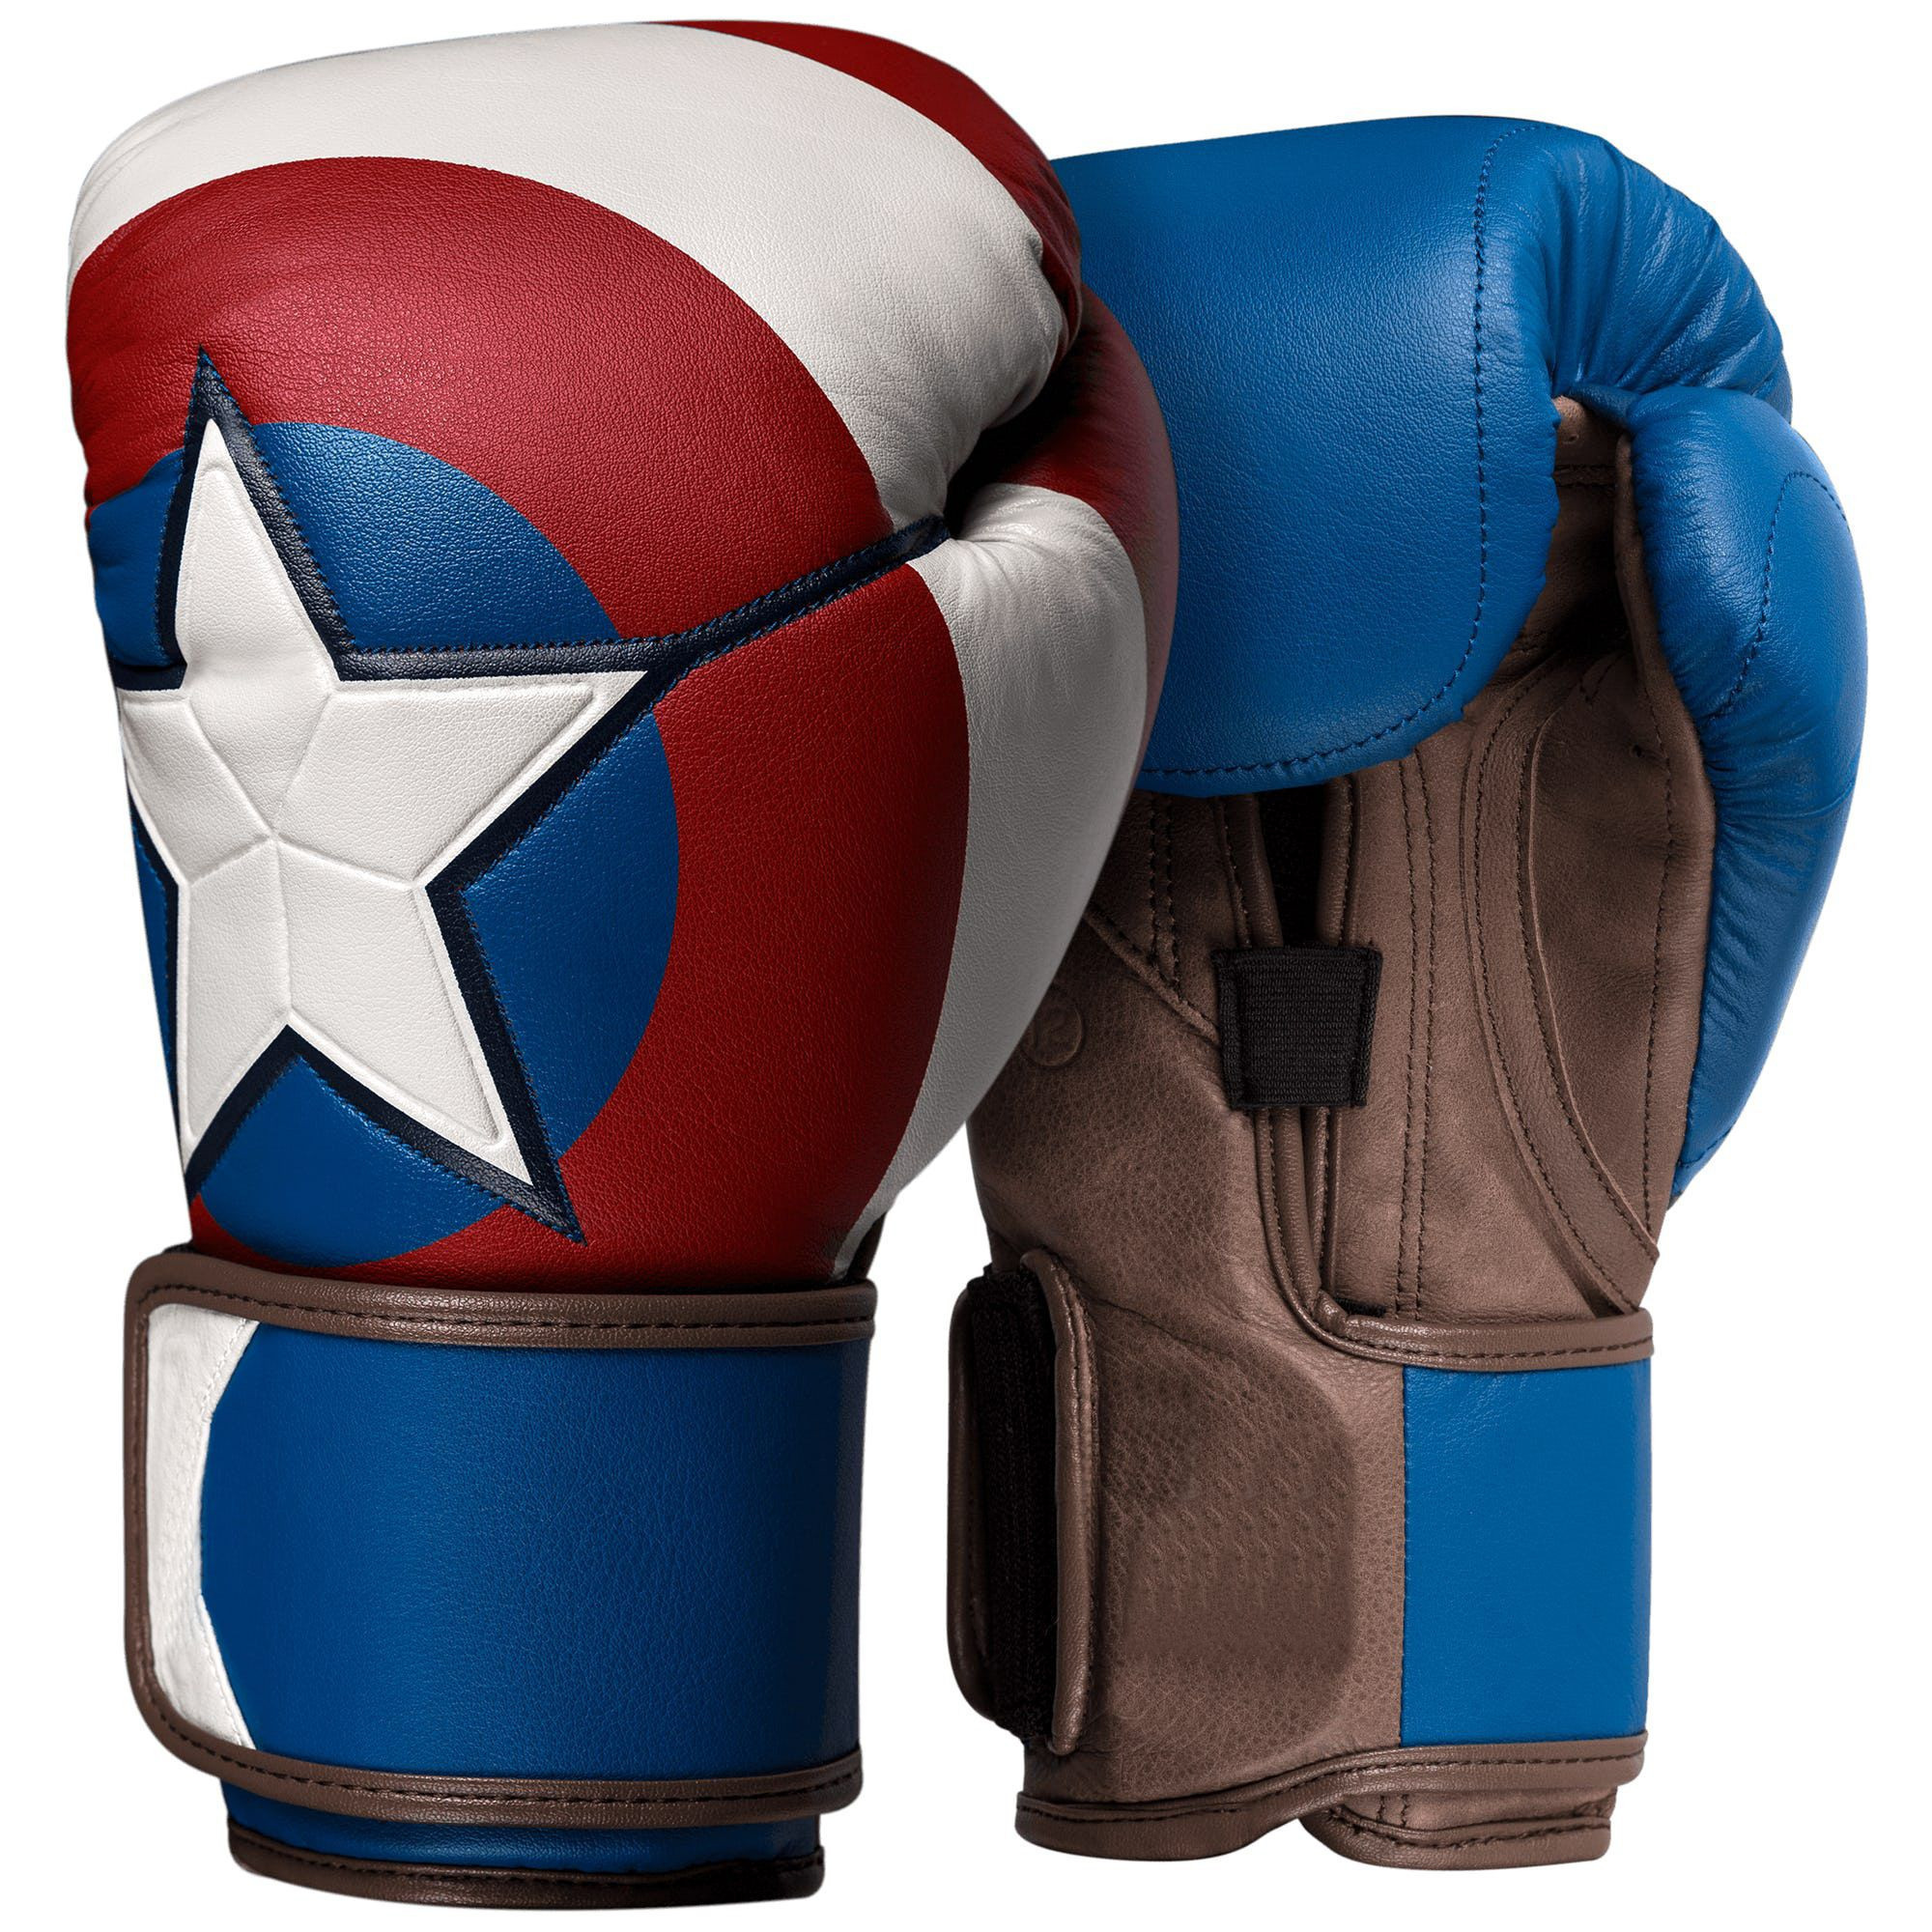 Top Quality Cheap custom design Boxing Gloves , Focus Pads, Kick Pads, MMA Gloves